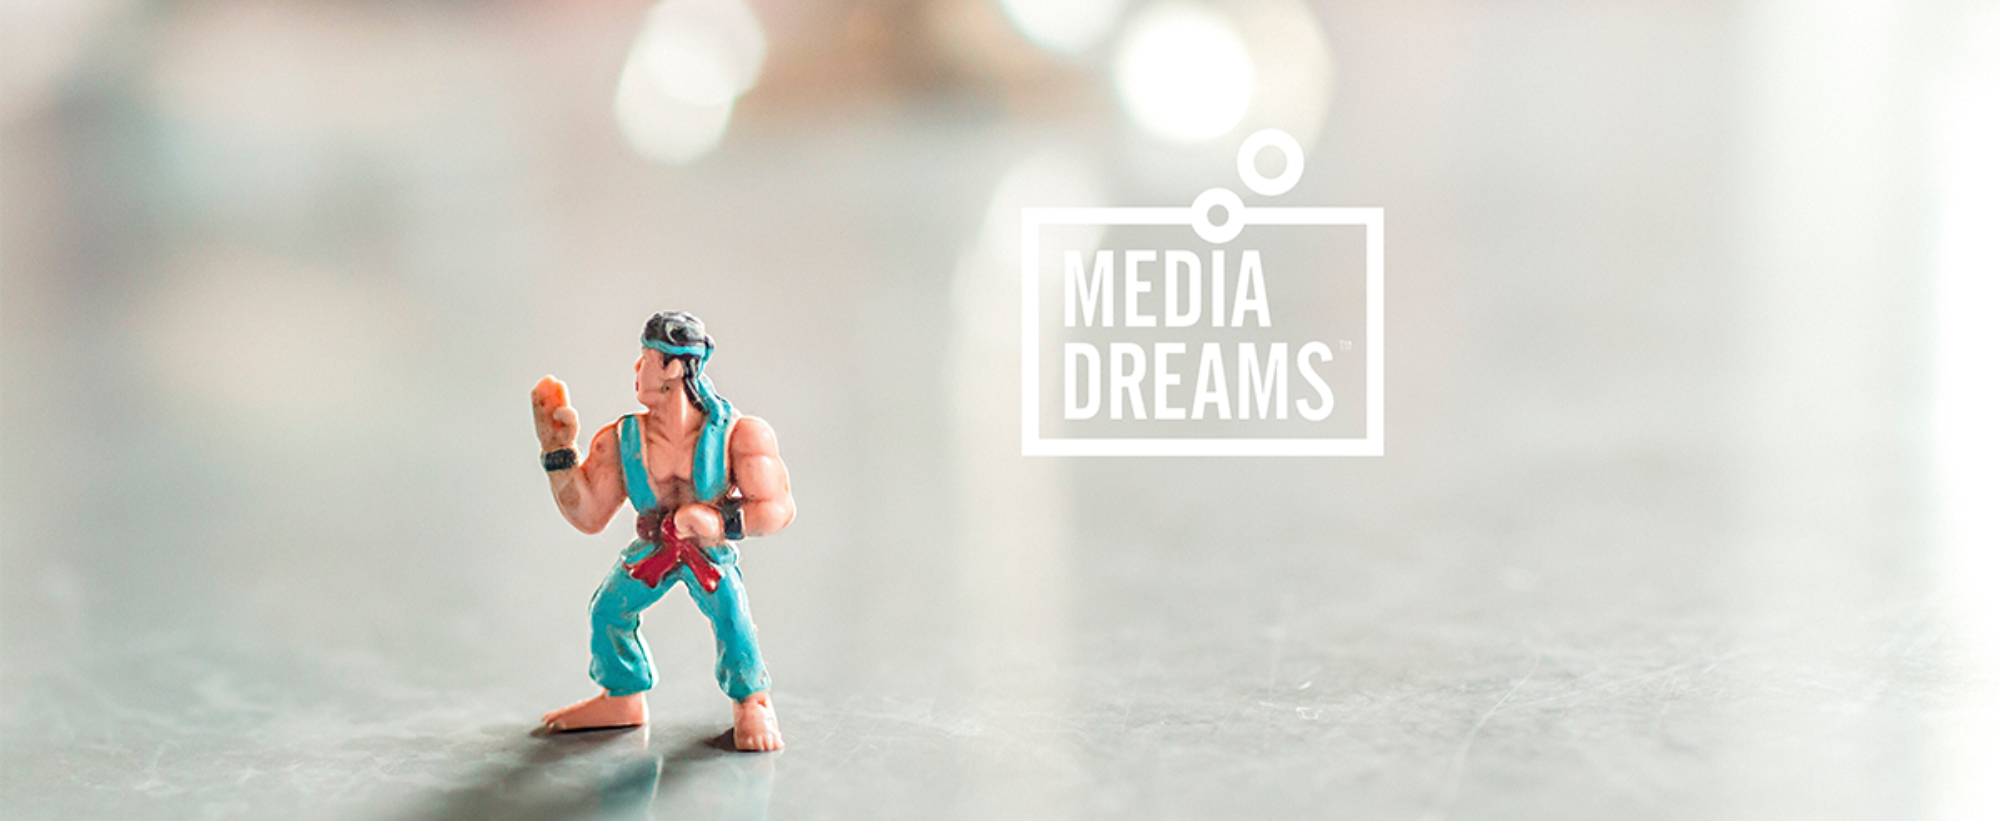 MEDIA DREAMS | The branding & storytelling agency with performances